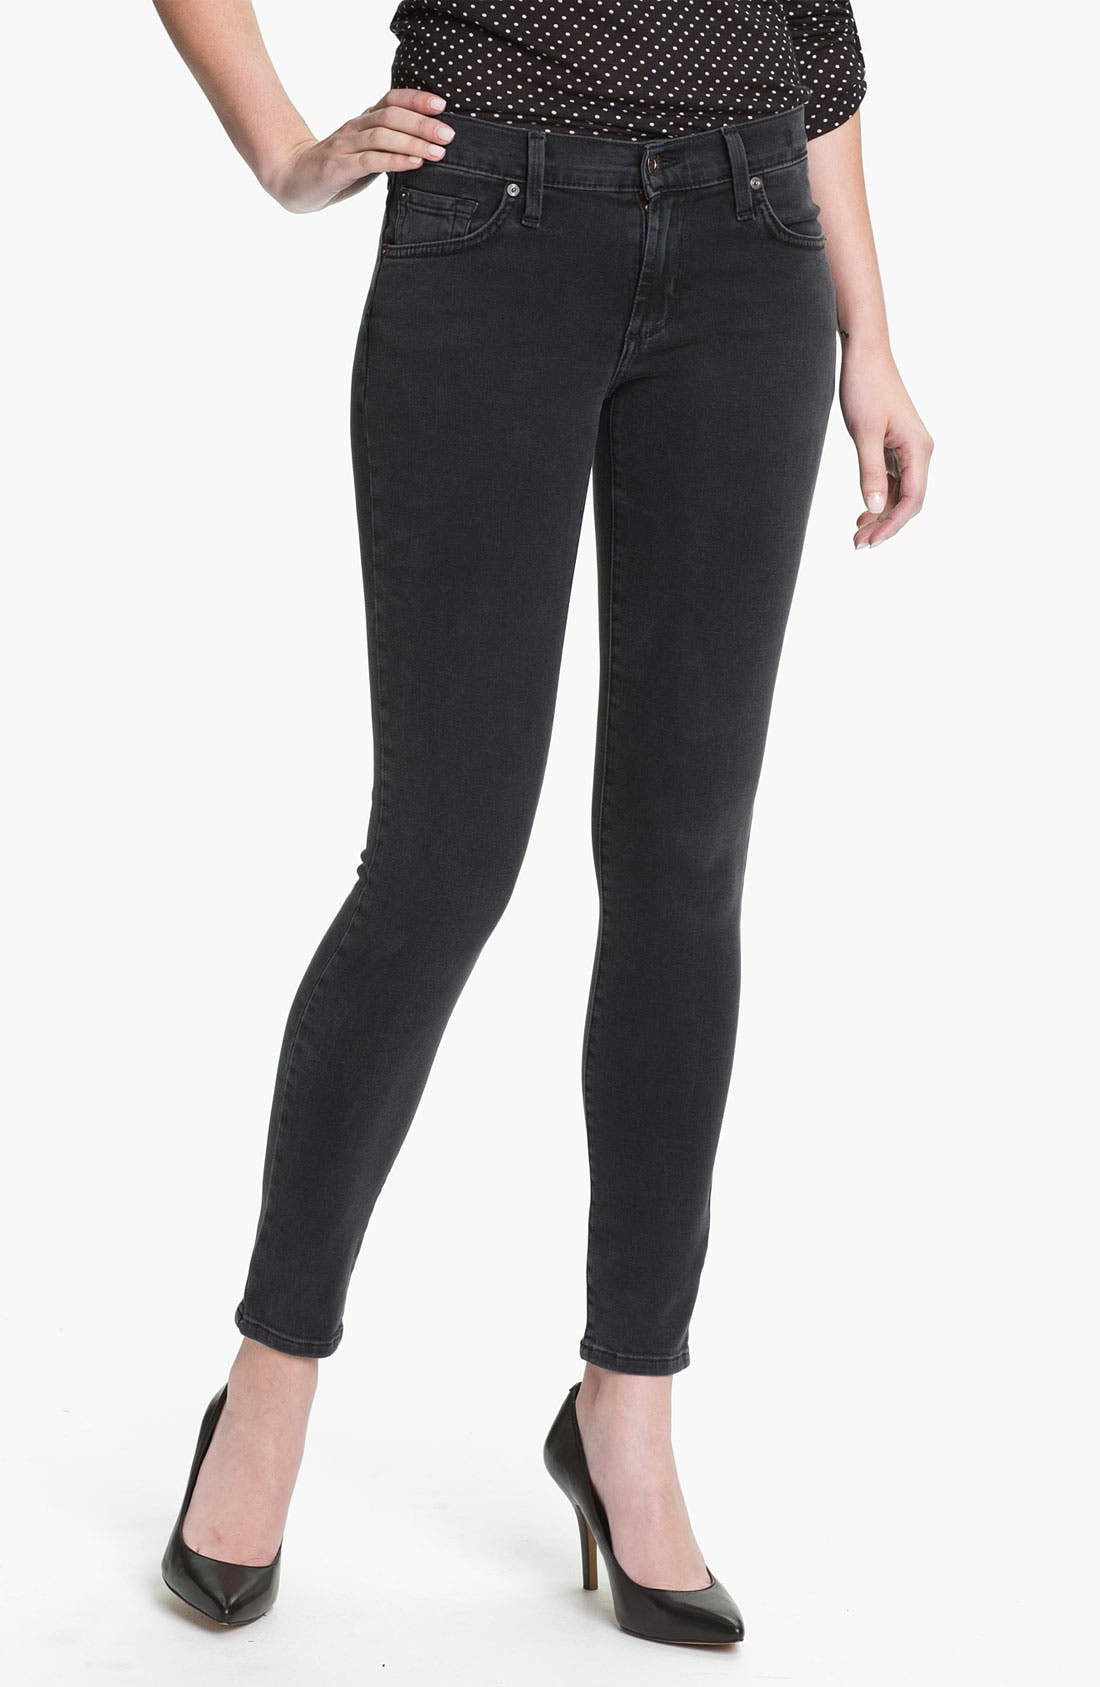 Alternate Image 1 Selected - James Jeans Stretch Denim Leggings (Petite) (Online Exclusive)